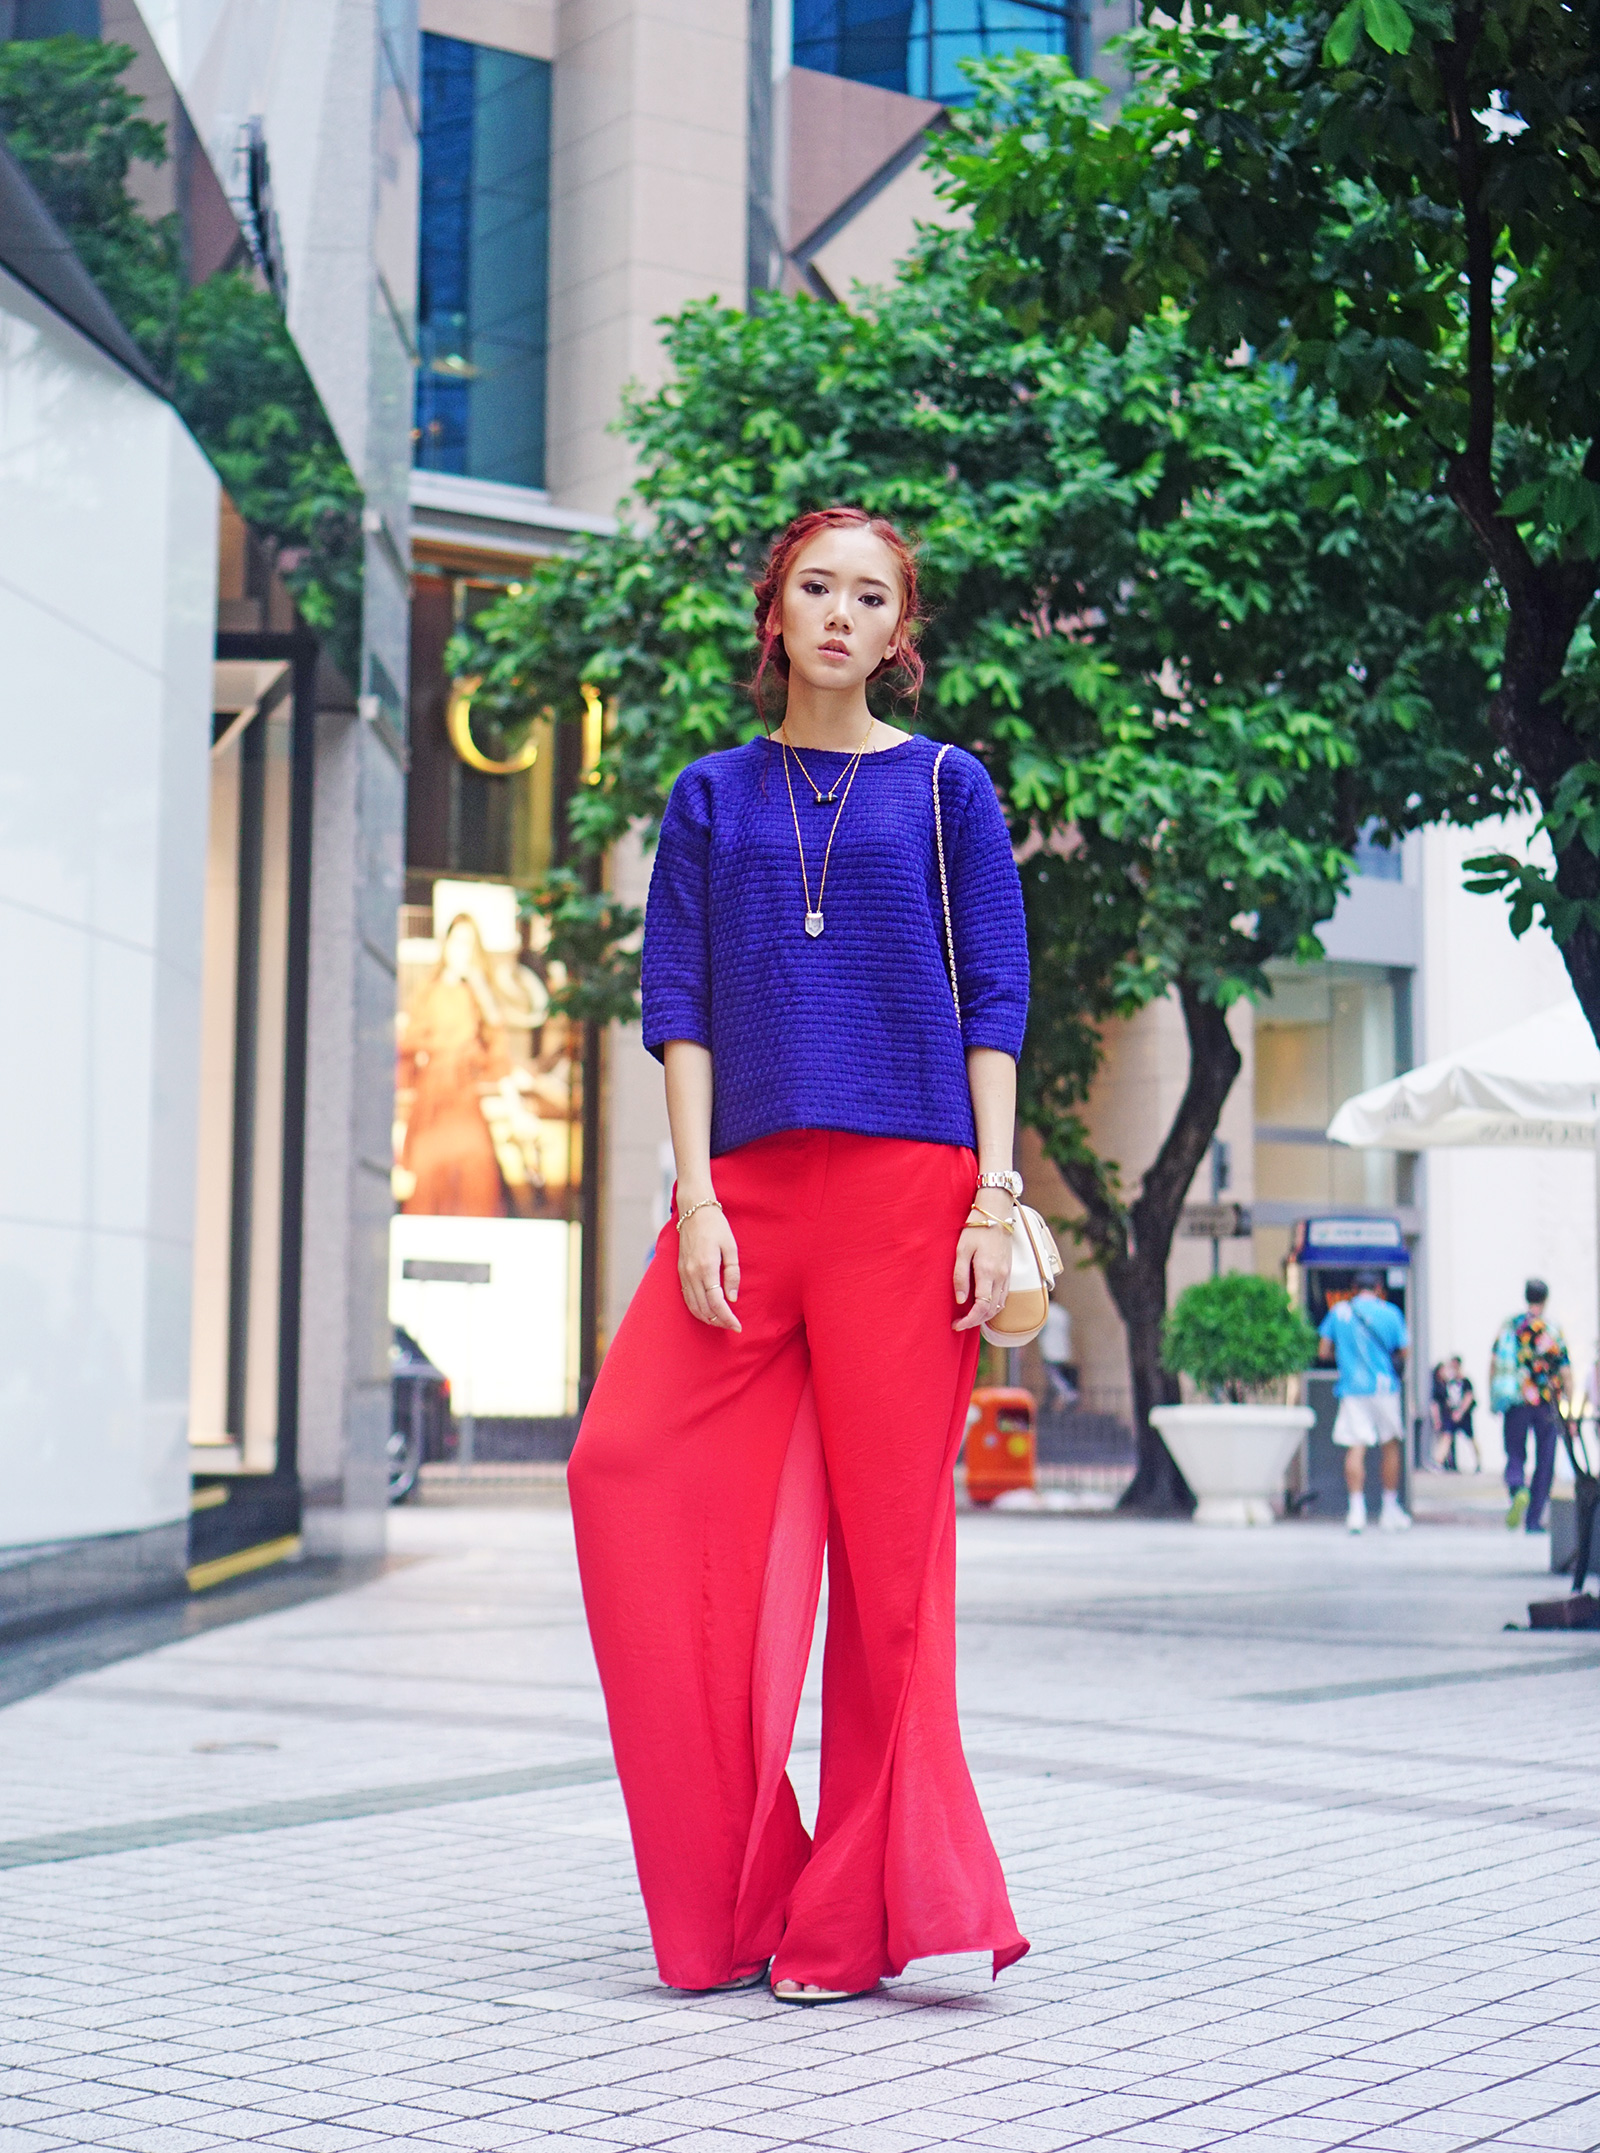 Choies knit top, Zara wide trousers, Newbark sandals, Mulberry bag - www.itscamilleco.com